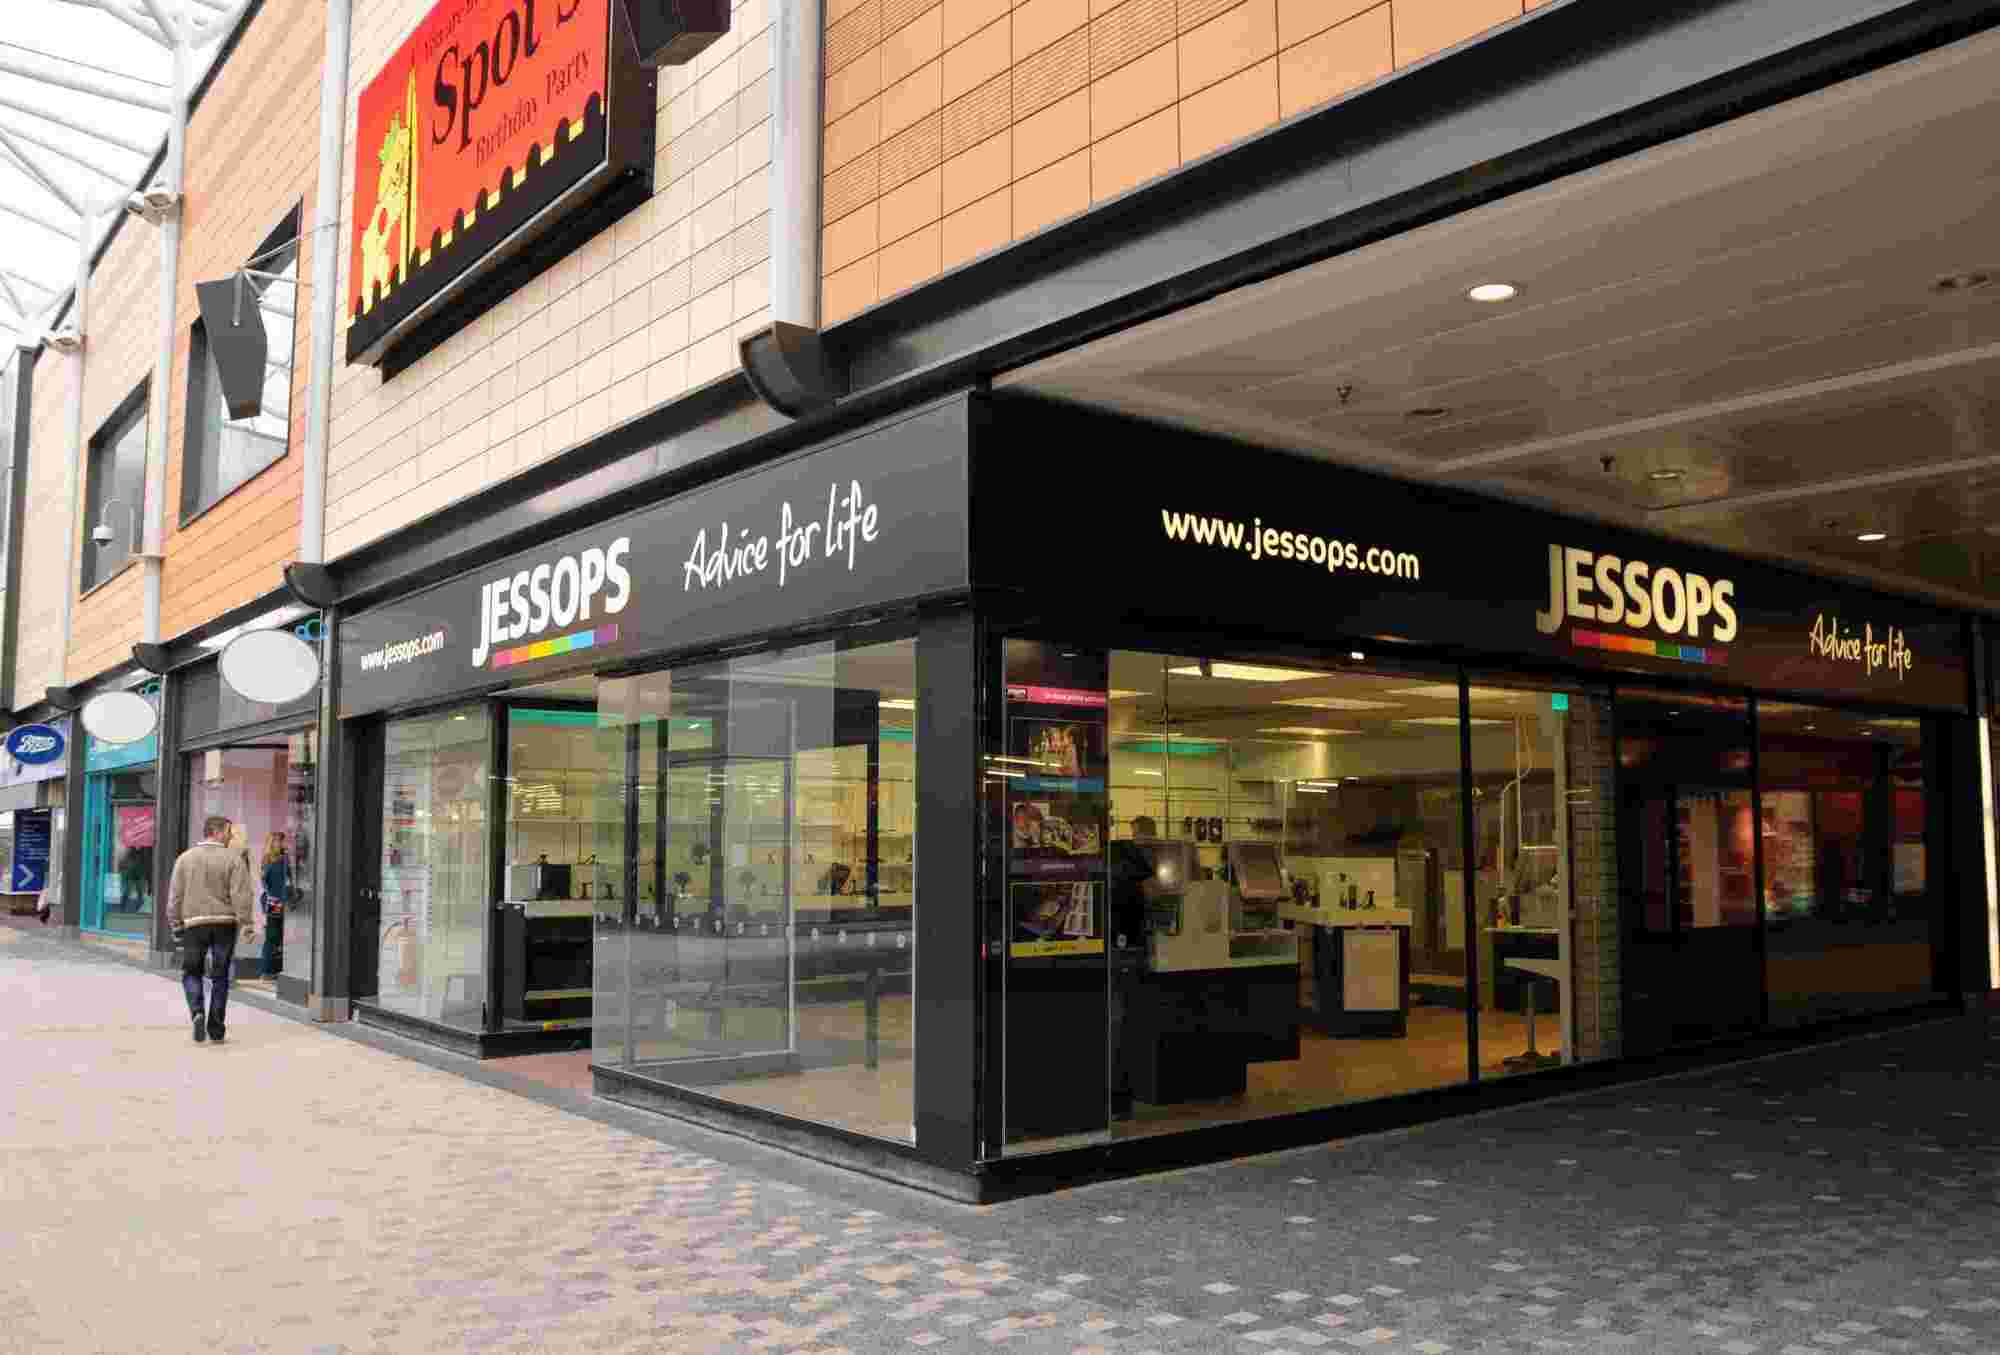 Good news for Basingstoke with Jessops back in the frame